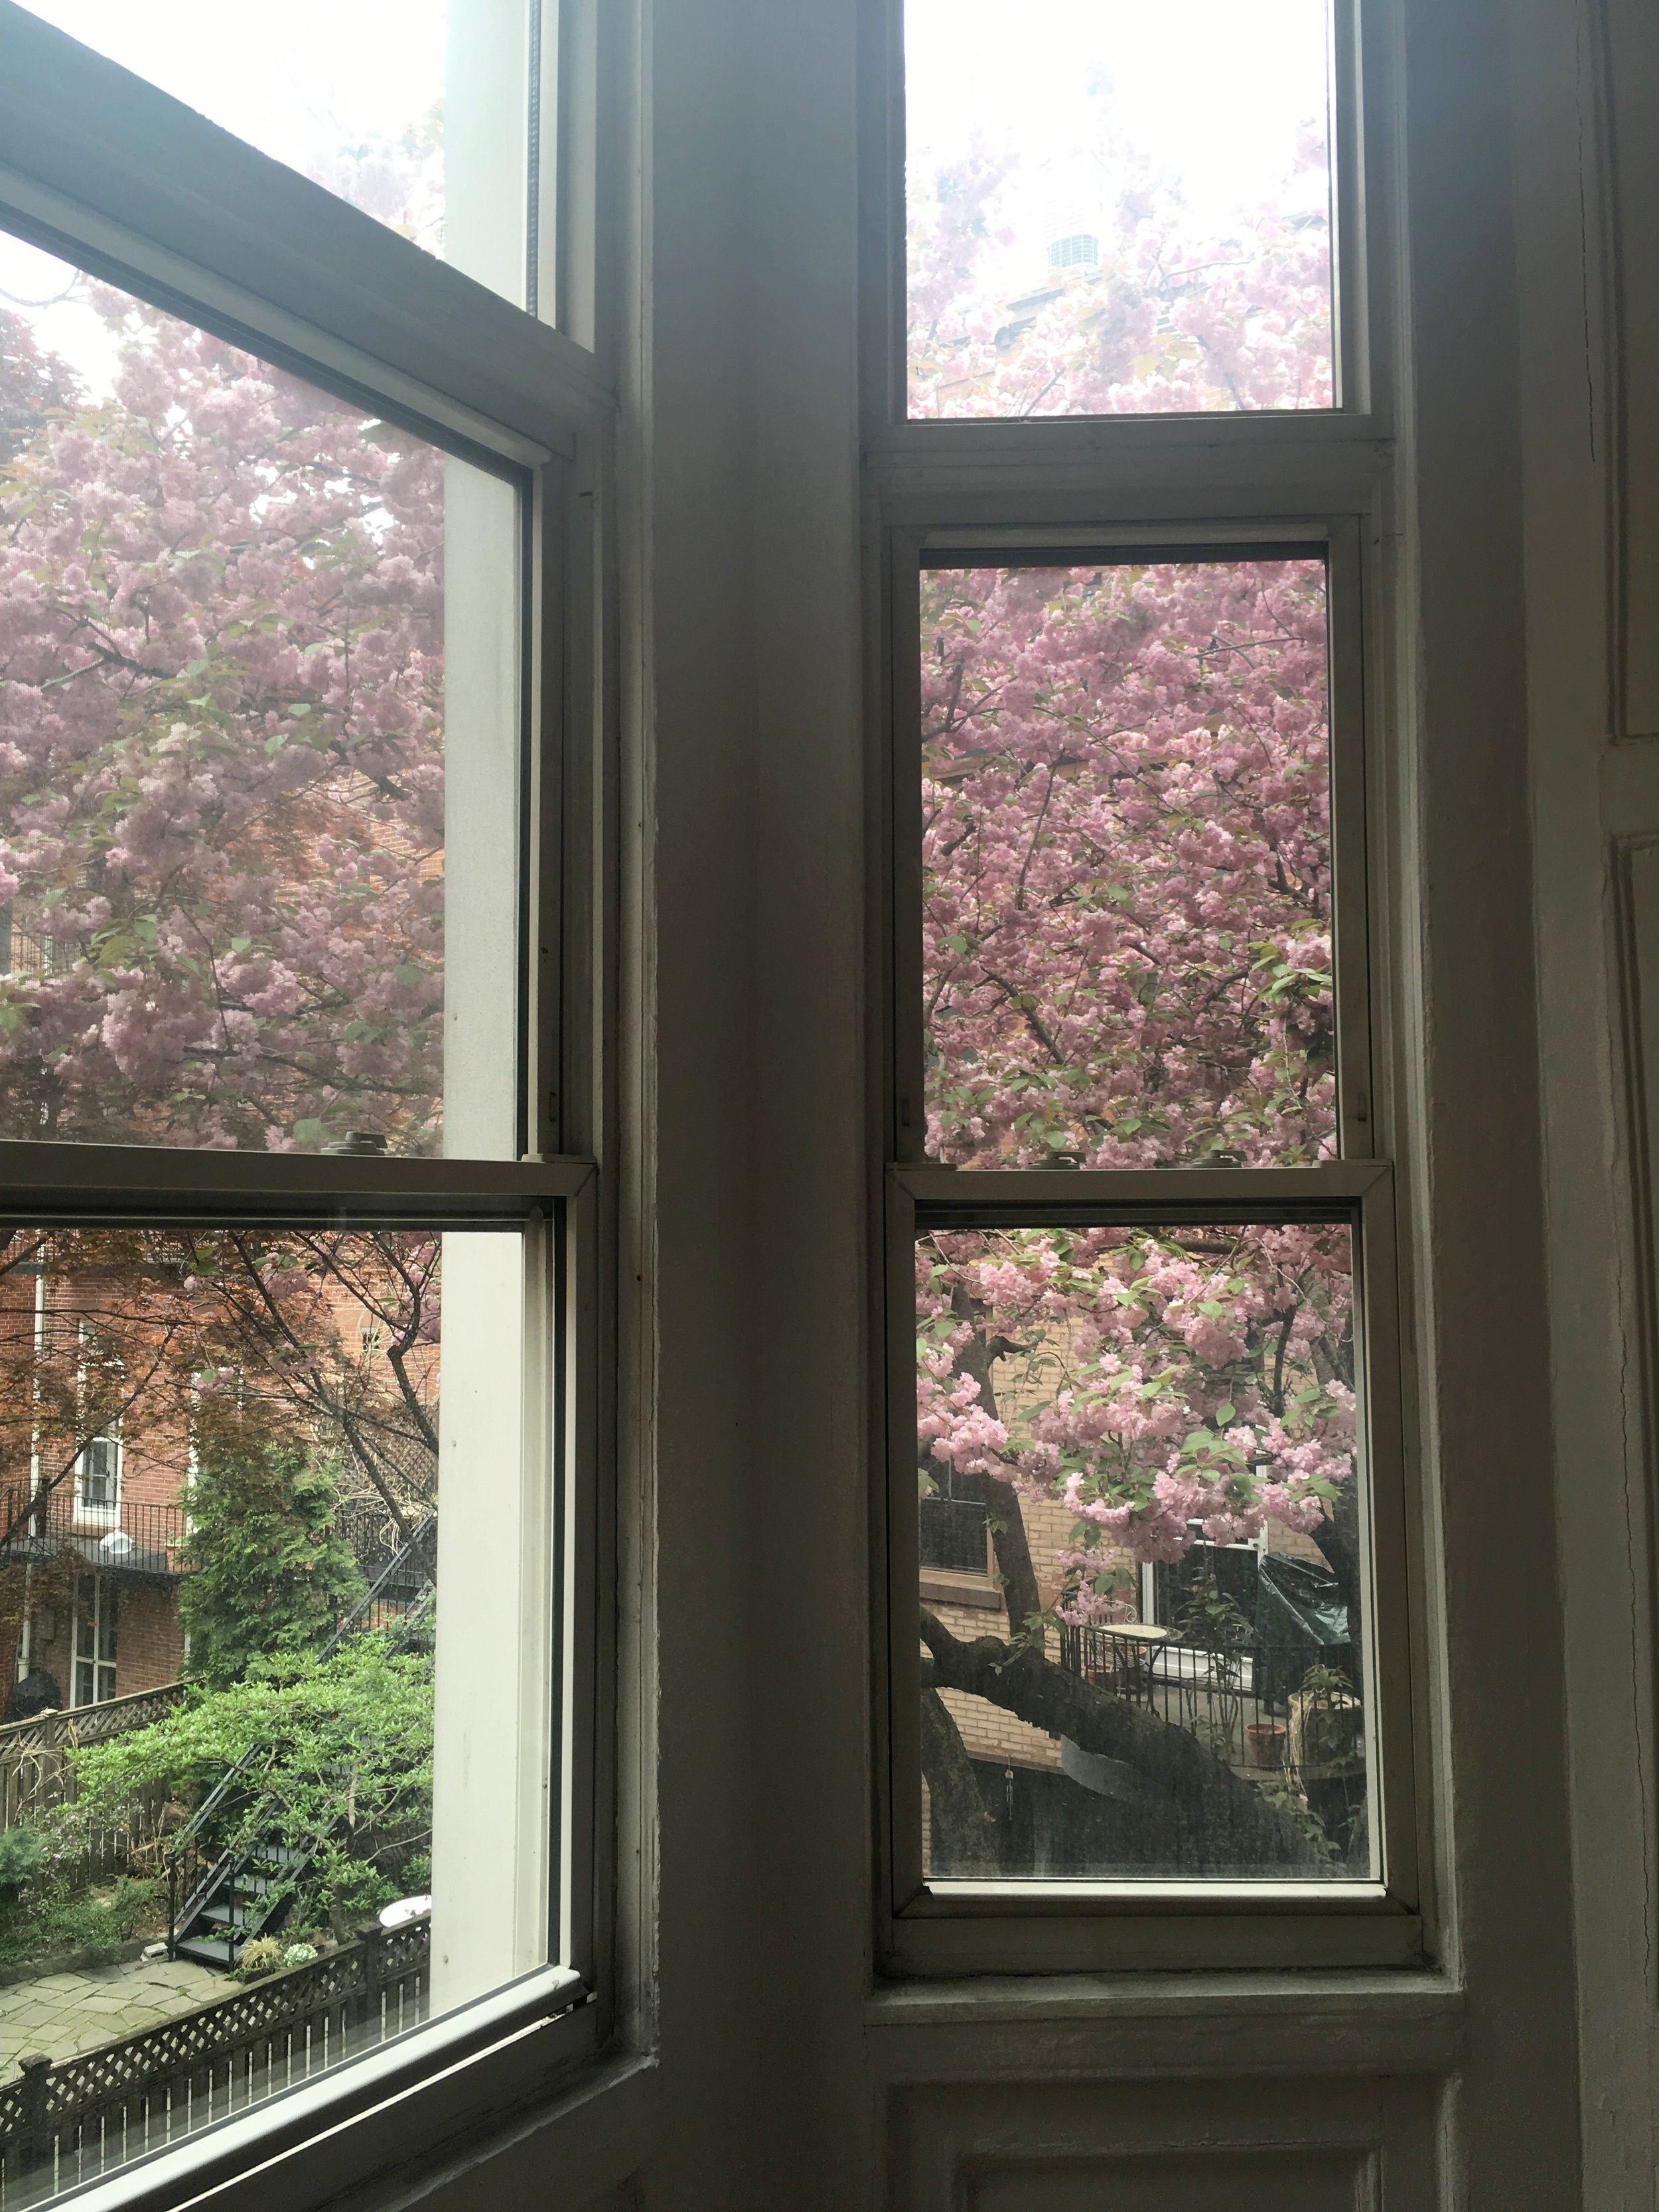 NYC apartment hunting: The one that got away - Quirky, high ceilings and gorgeous trees outside. We were just too late, so a new home for someone else...